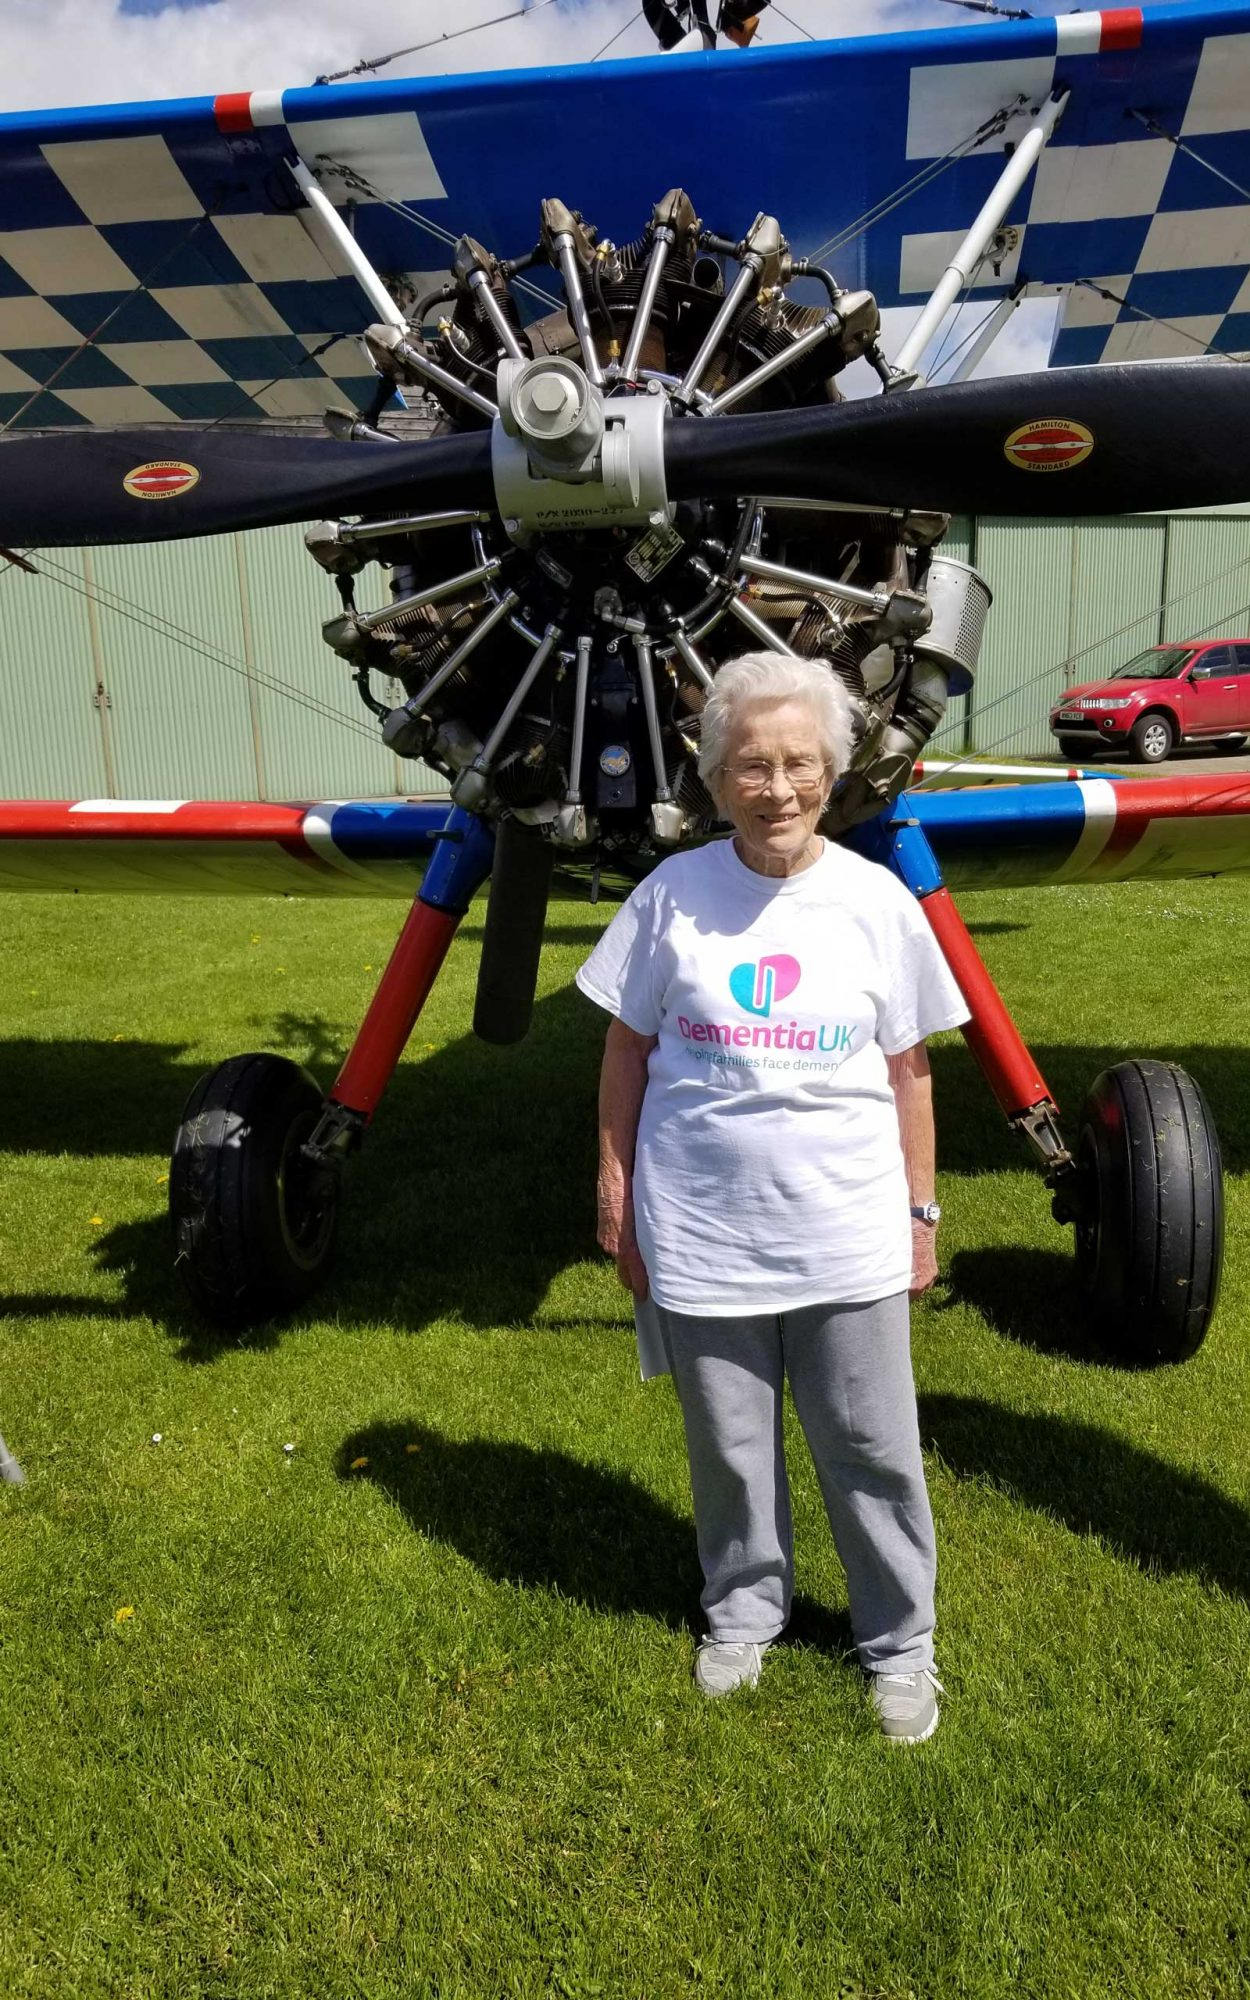 Norma Howard, 91, walks wing of plane as fundraiser for Dementia UK